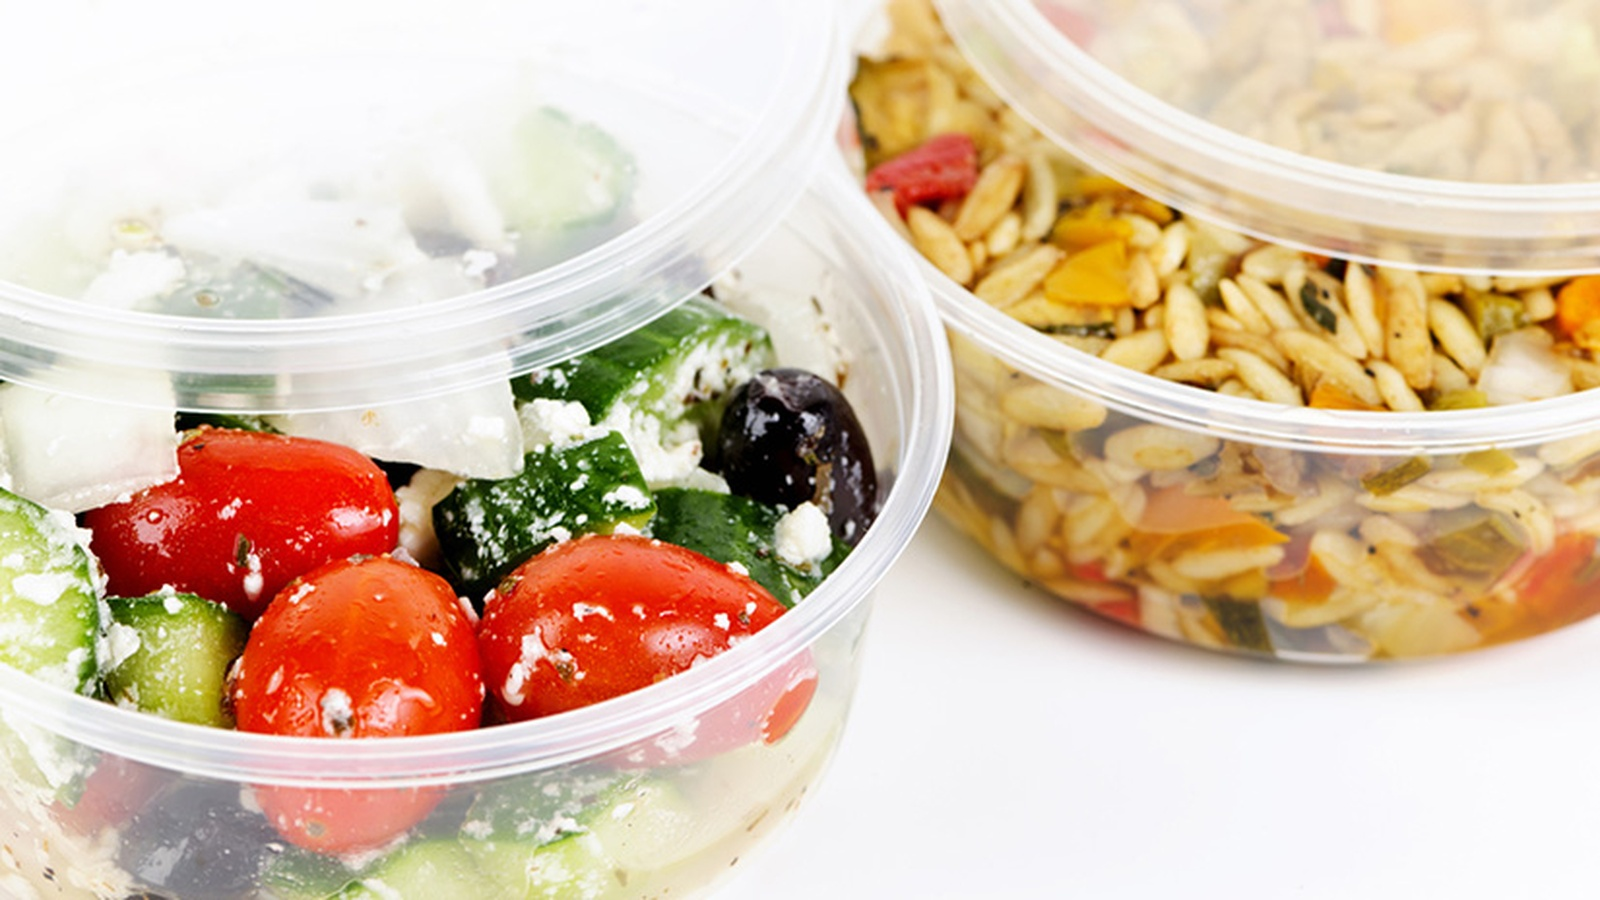 5 Reasons To Avoid Plastic Containers